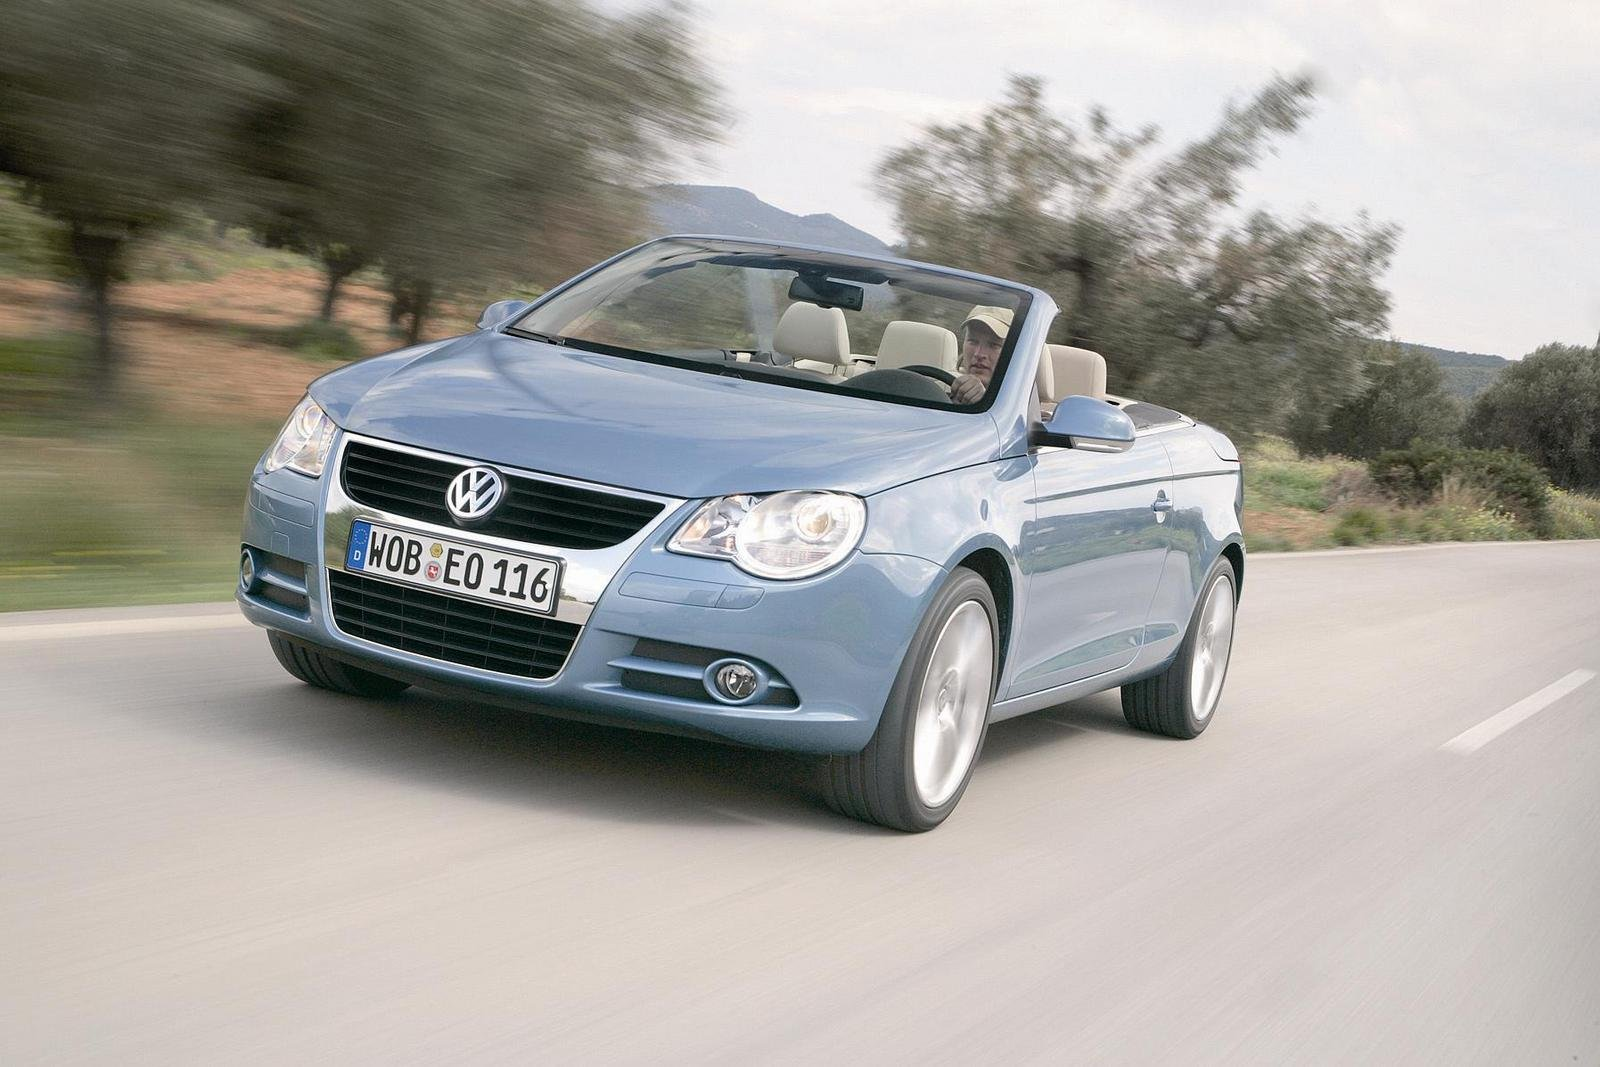 2006 volkswagen eos picture 82747 car review top speed. Black Bedroom Furniture Sets. Home Design Ideas